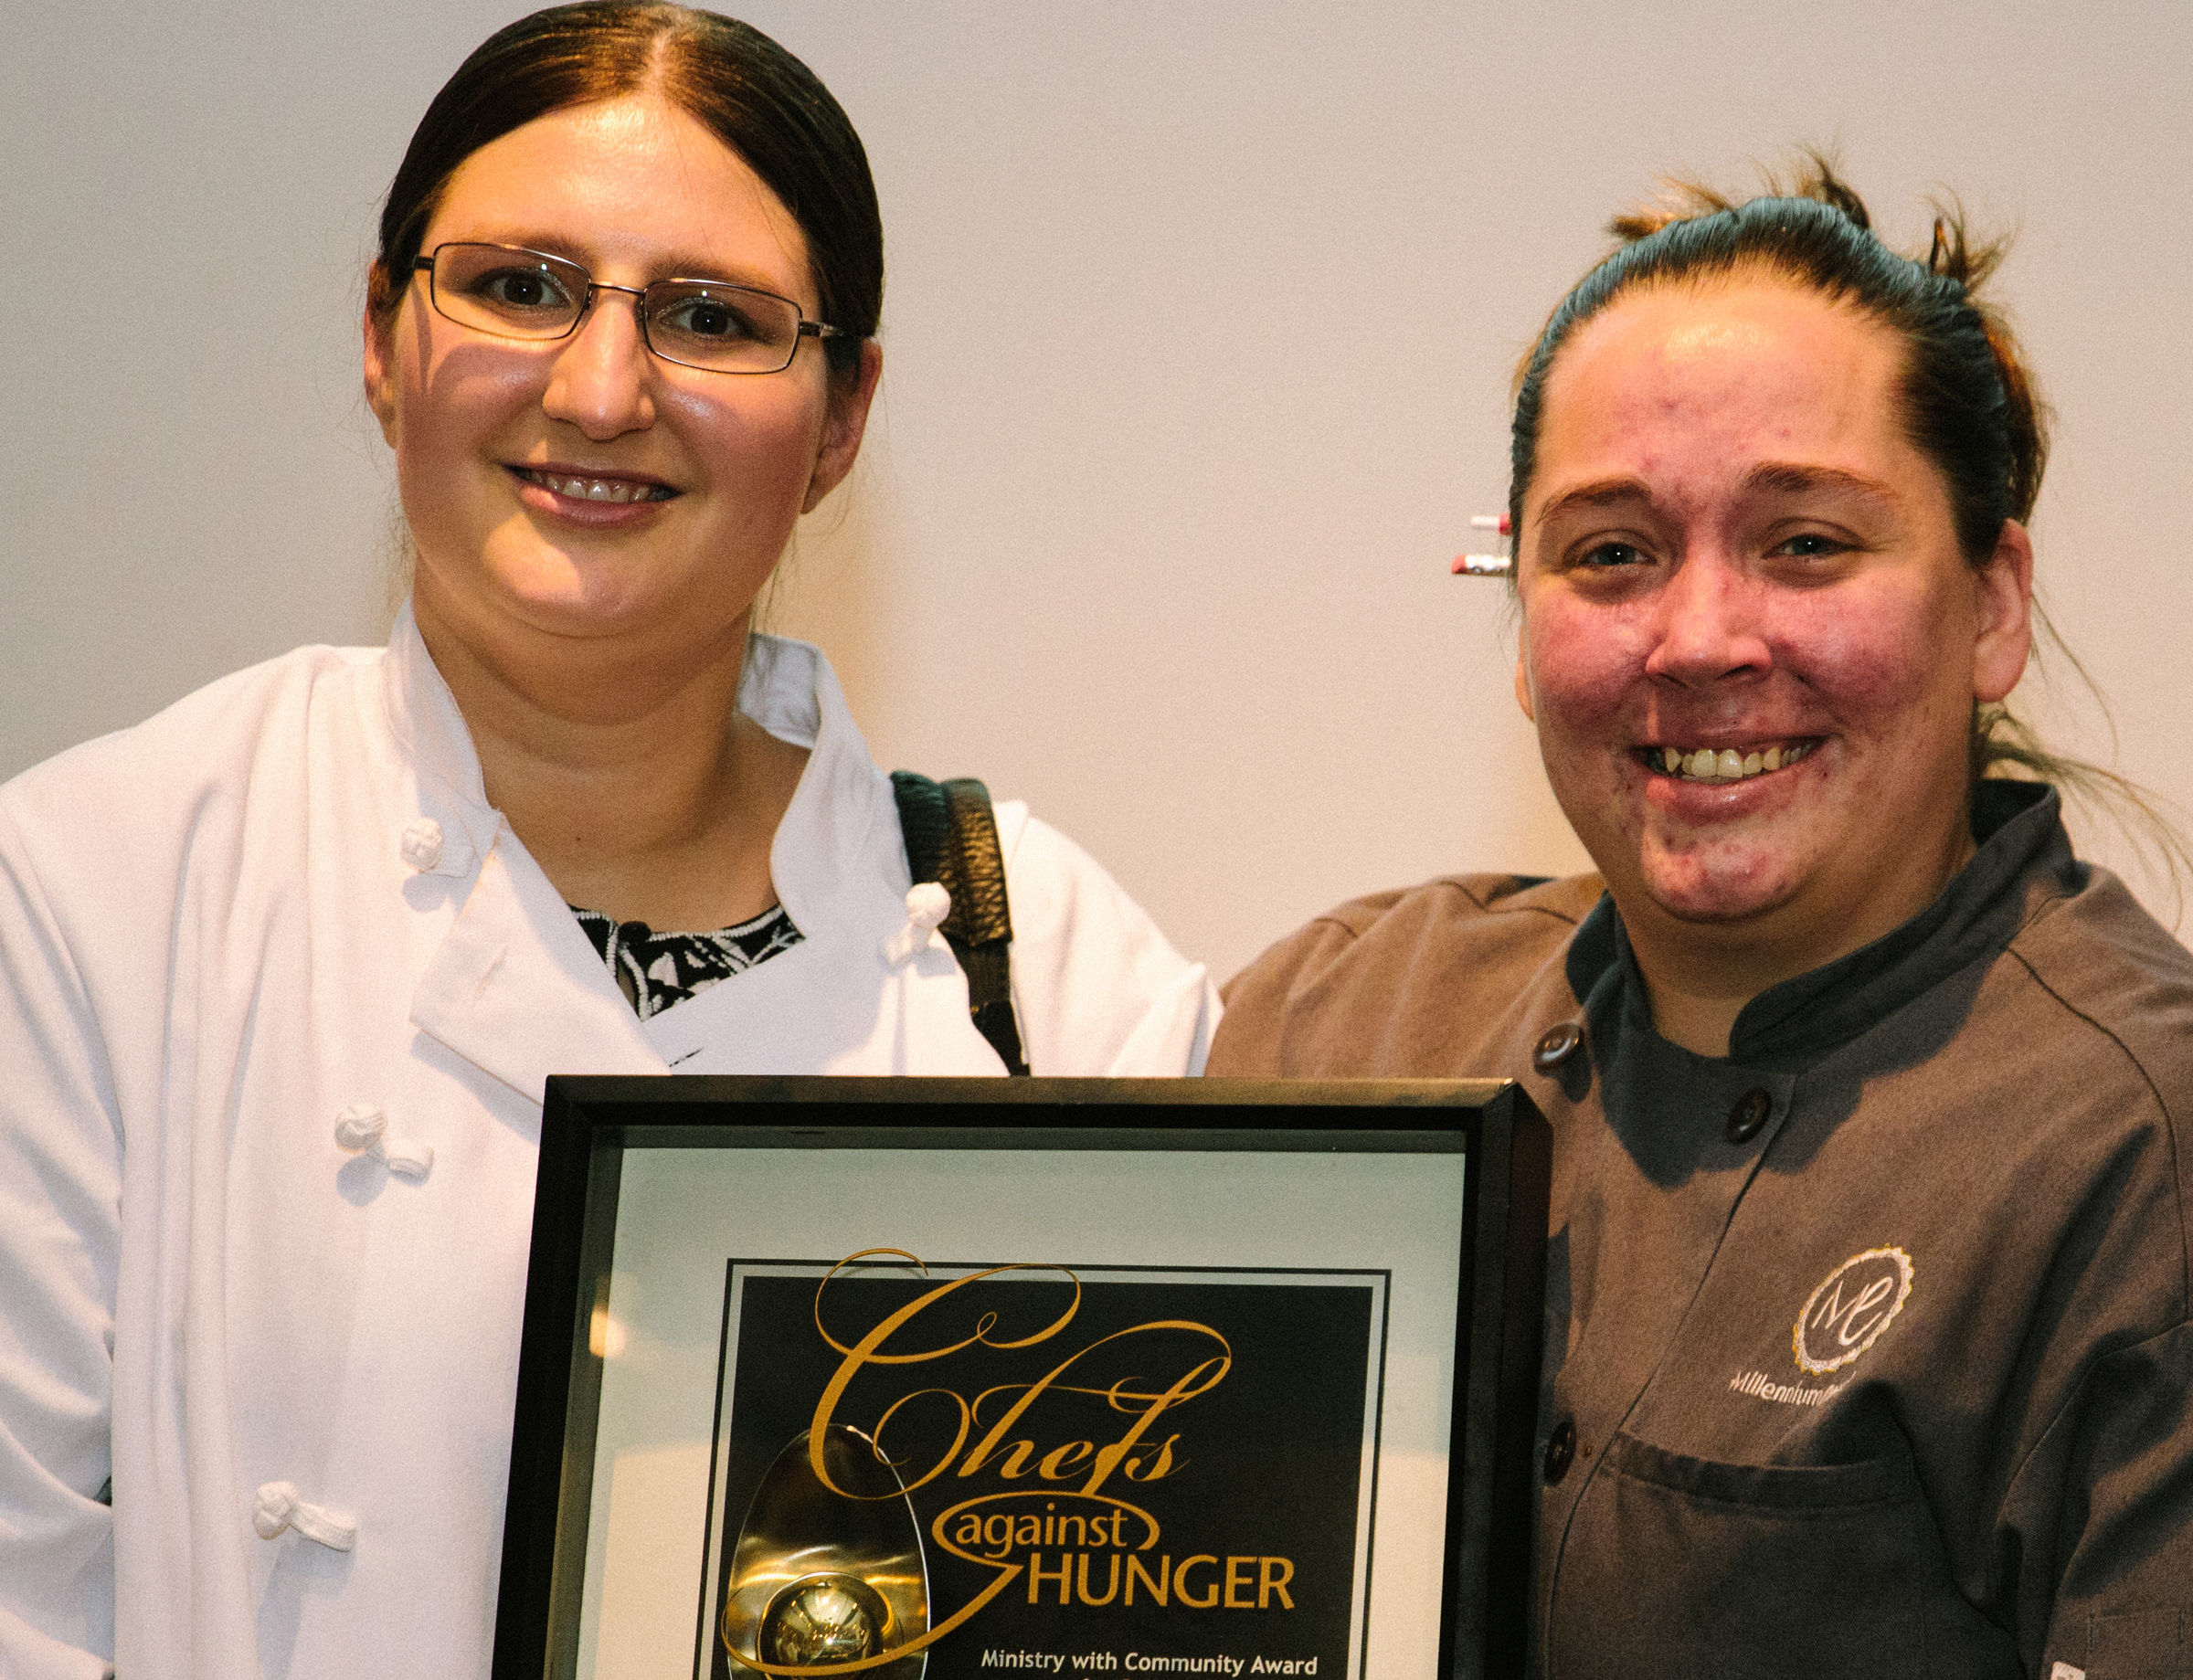 Chefs Against Hunger Winners